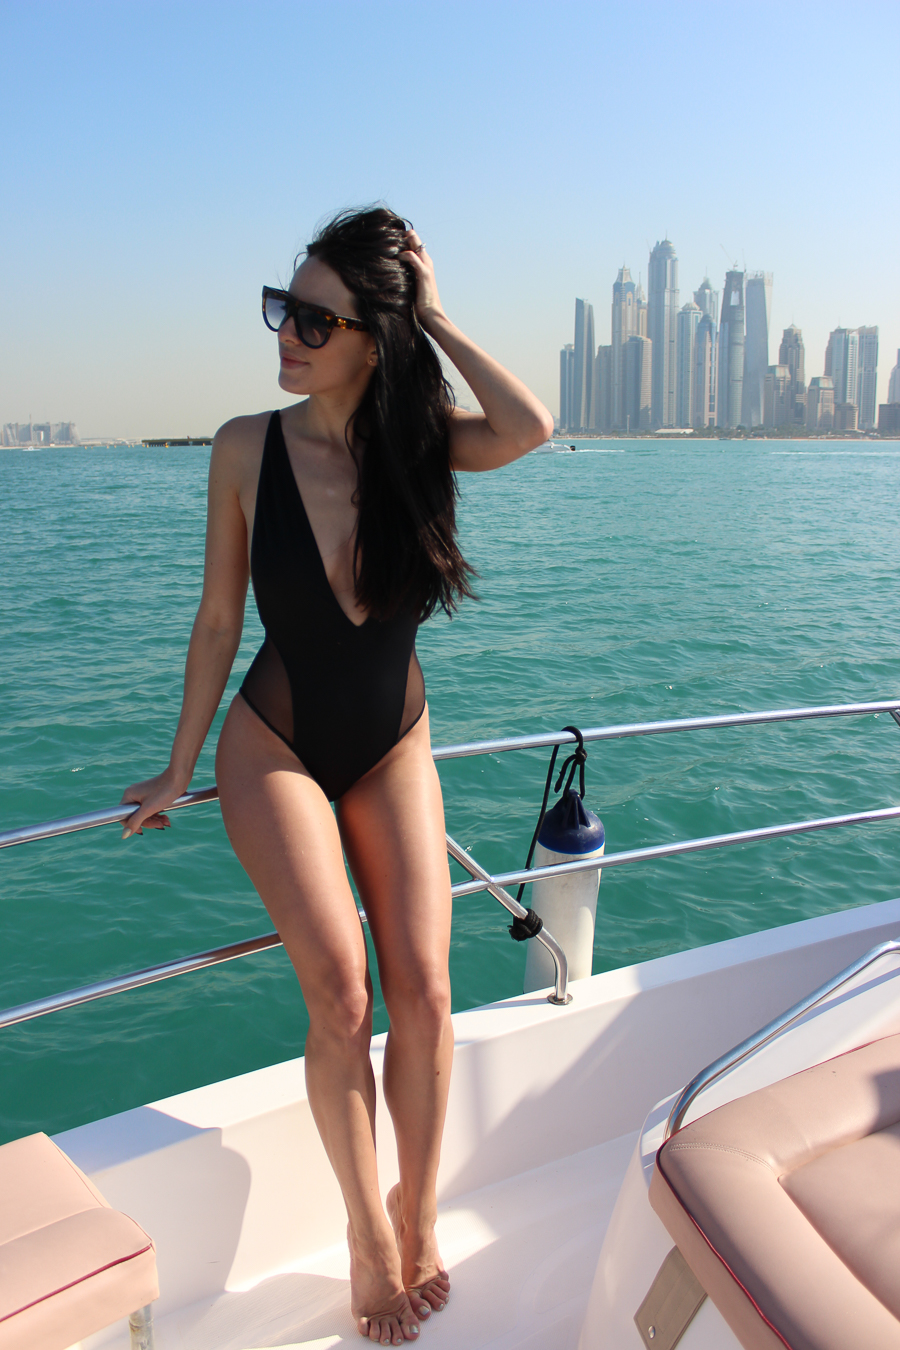 clutch and carry on - uk travel blogger - dubai travel blog - dubai yacht tour - sabrina chakici-17